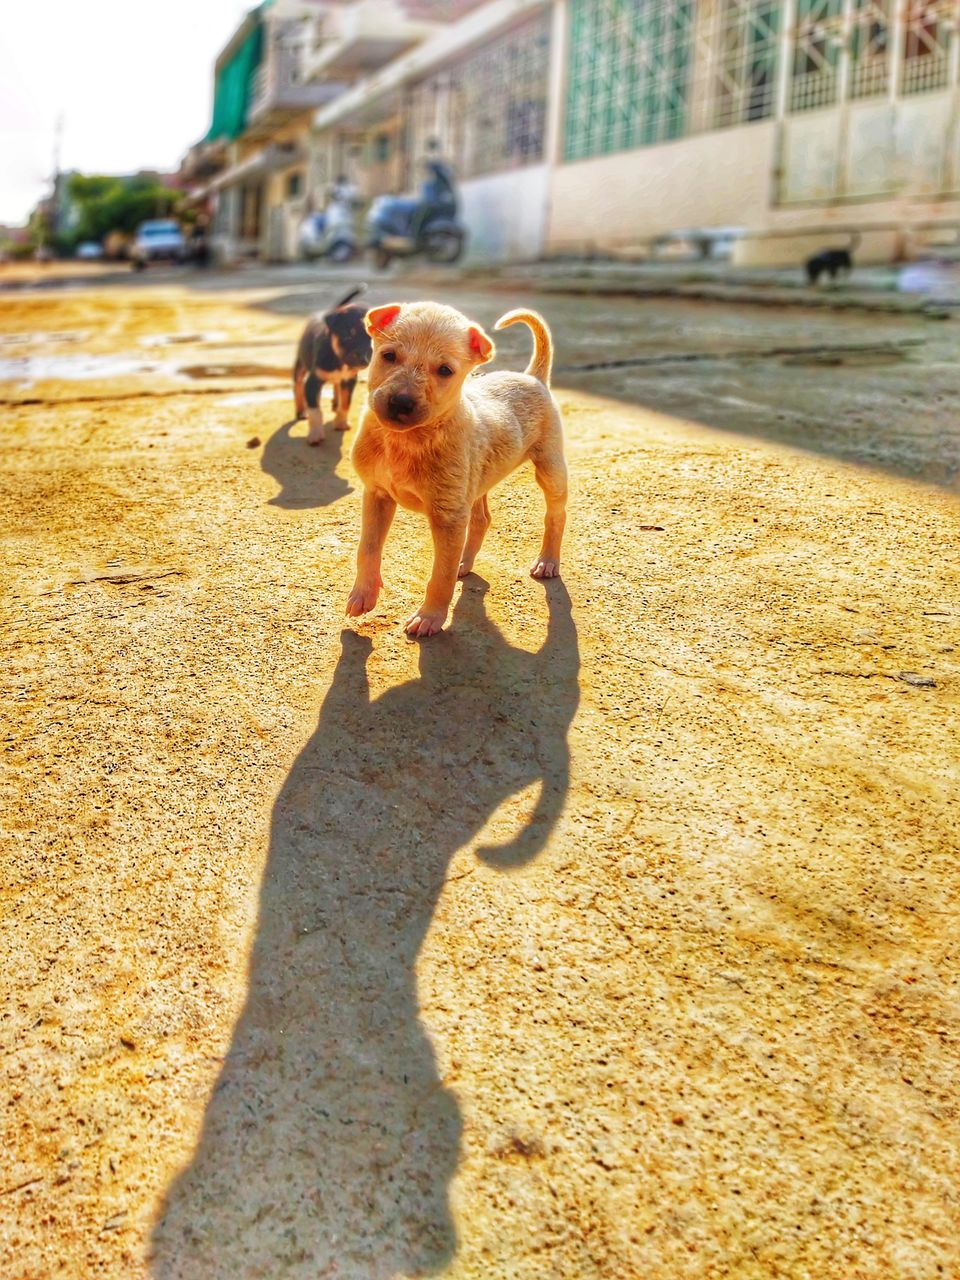 domestic animals, pets, one animal, domestic, shadow, mammal, canine, dog, sunlight, vertebrate, day, nature, incidental people, outdoors, standing, people, city, small